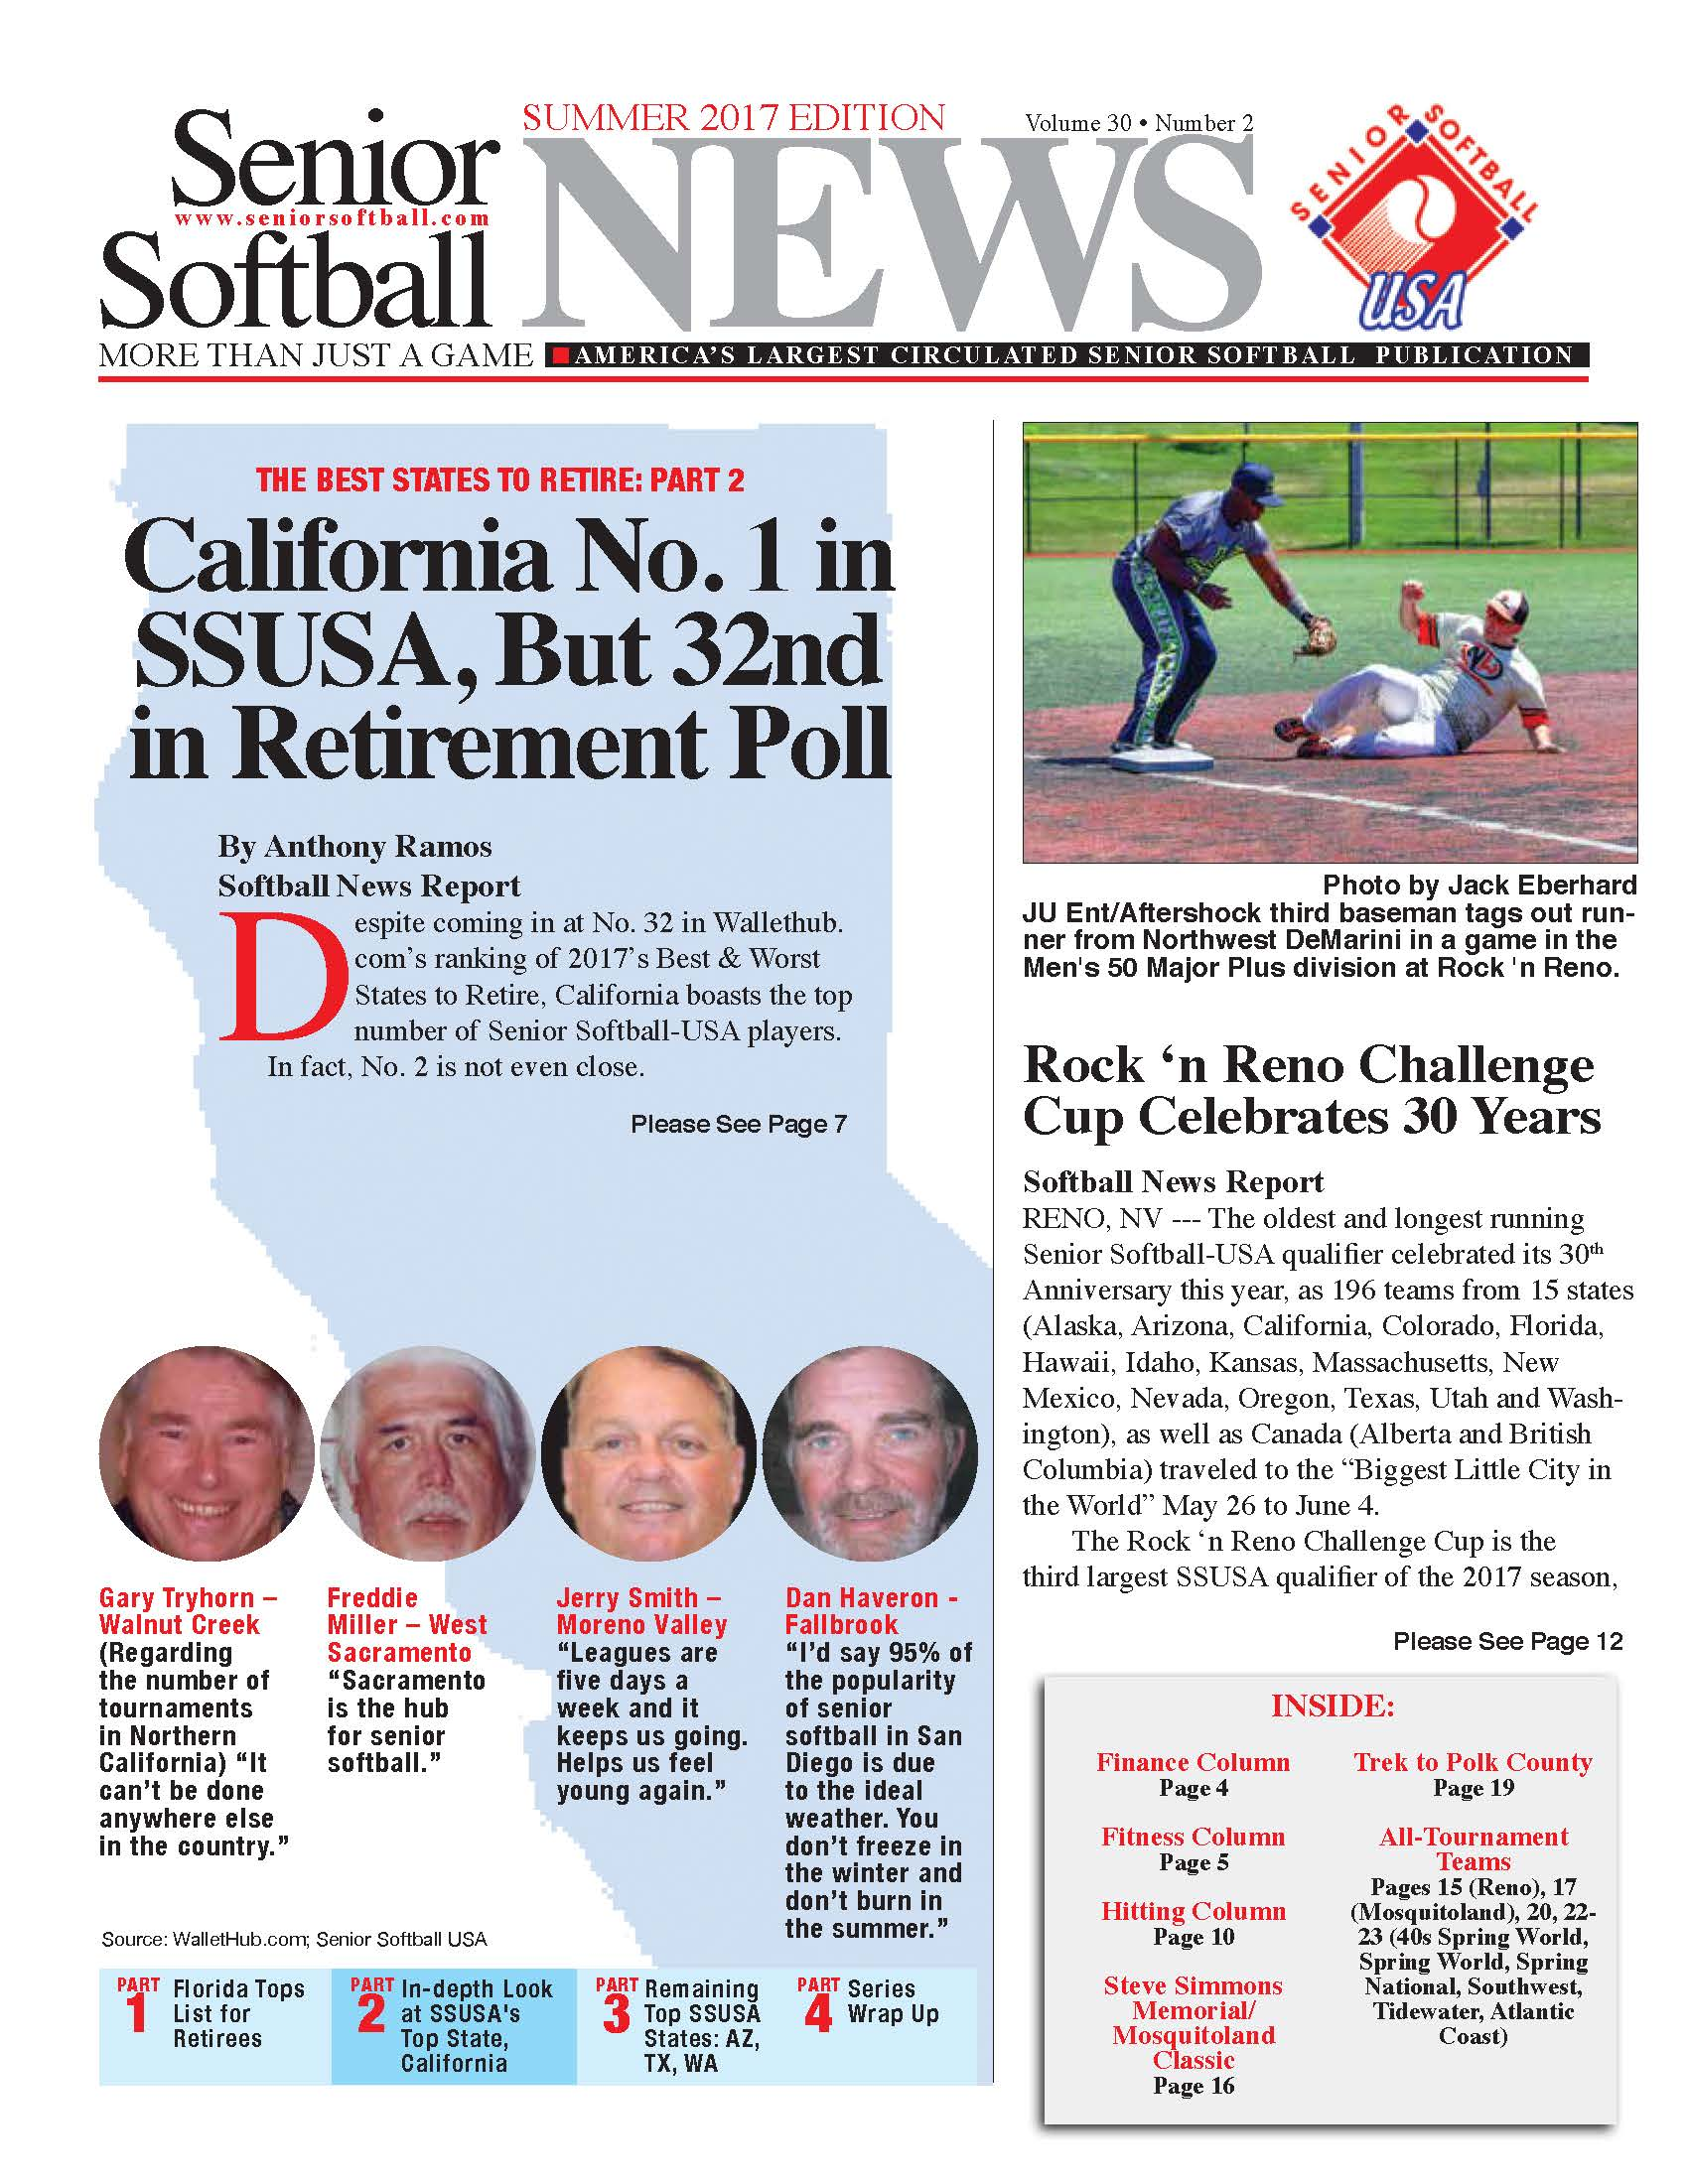 SENIOR SOFTBALL NEWS SUMMER 2017 EDITION AVAILABLE TO DOWNLOAD! |